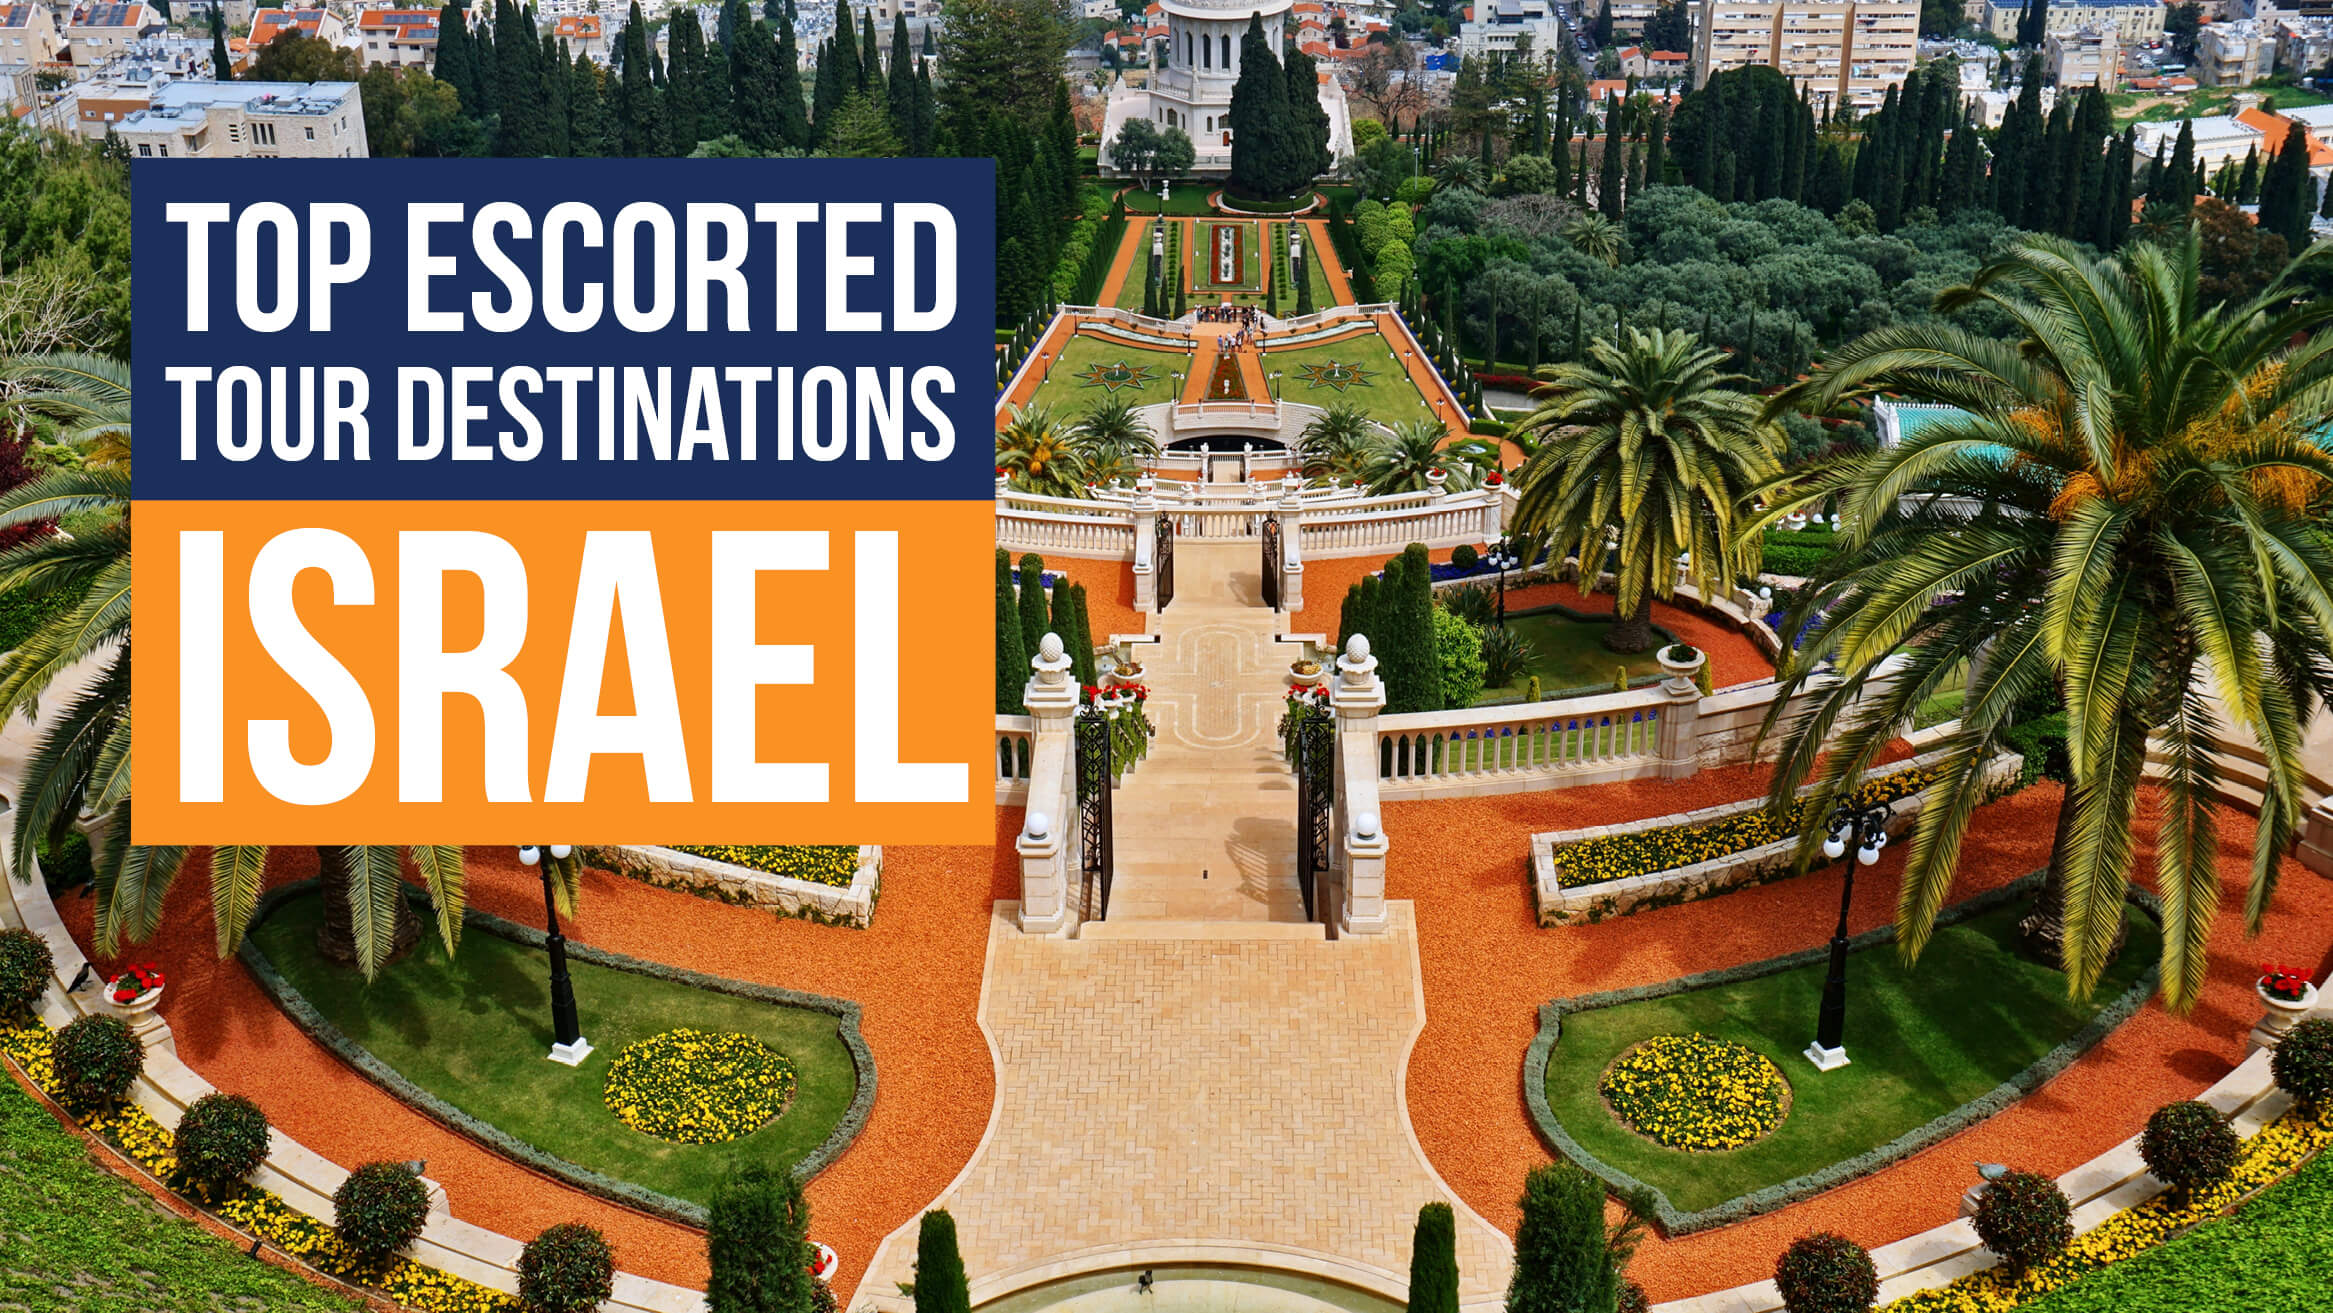 Top Escorted Tour Destinations Worldwide  Israel